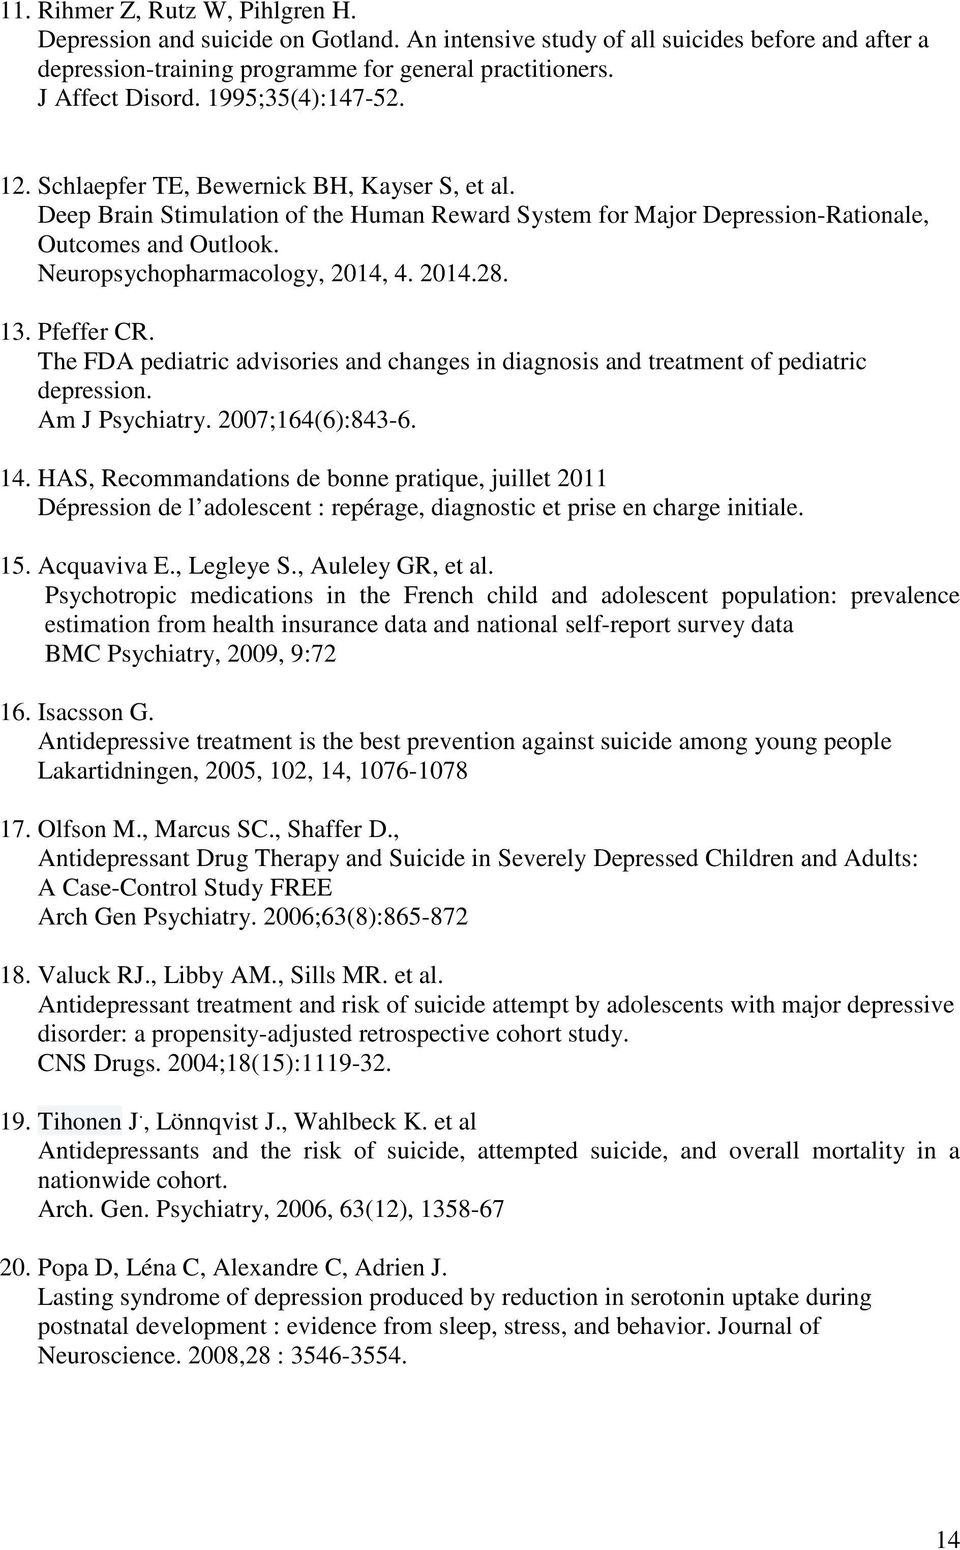 Neuropsychopharmacology, 2014, 4. 2014.28. 13. Pfeffer CR. The FDA pediatric advisories and changes in diagnosis and treatment of pediatric depression. Am J Psychiatry. 2007;164(6):843-6. 14.